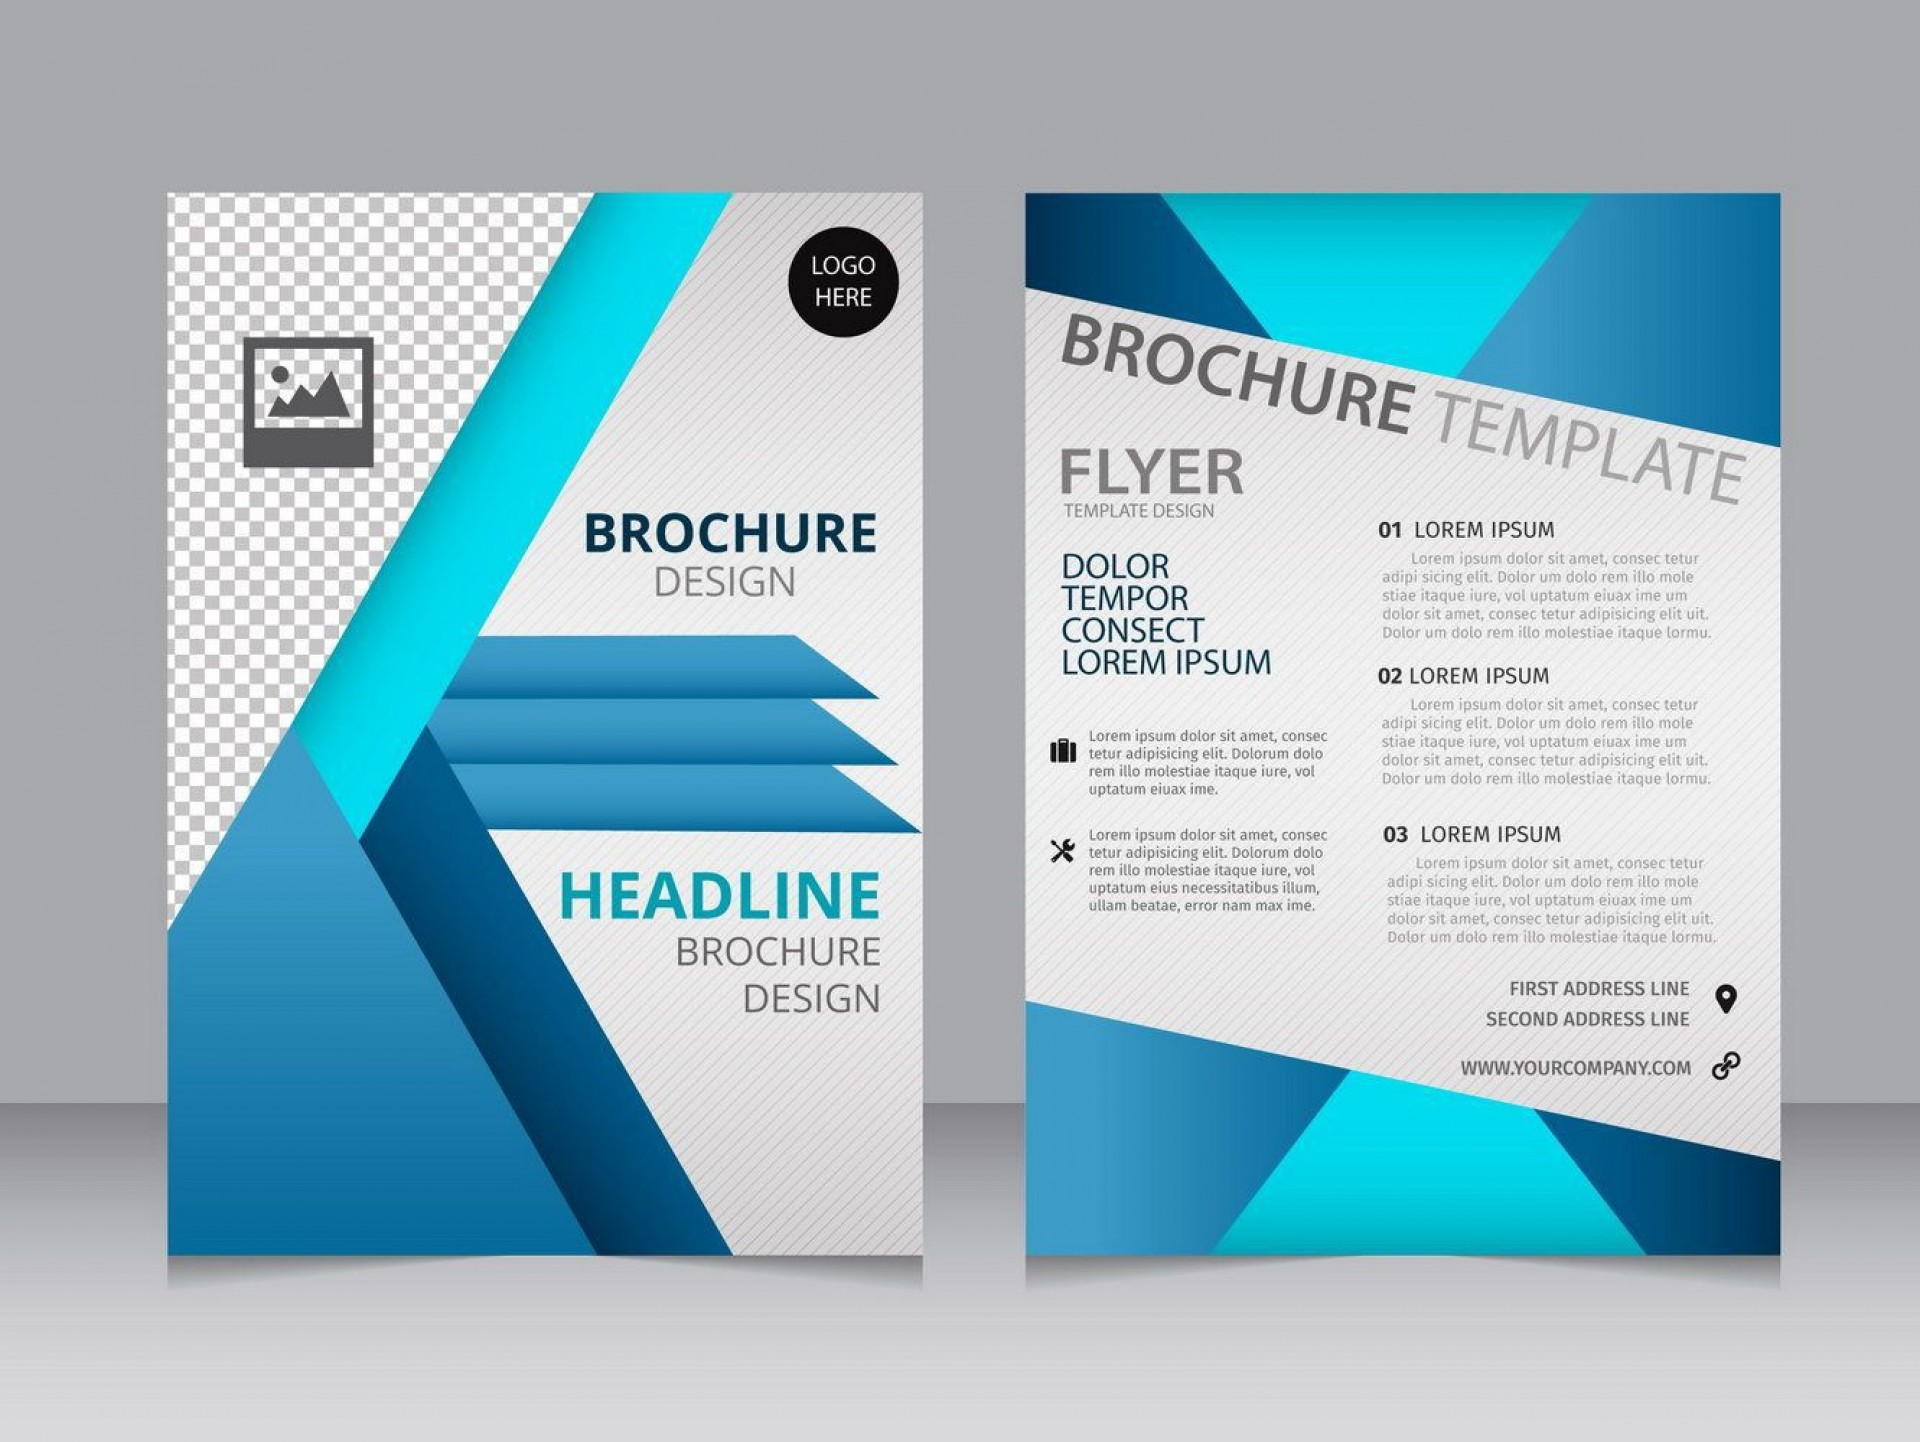 003 Awful Word Template Free Download Image  M Design Best Cv Microsoft 20191920